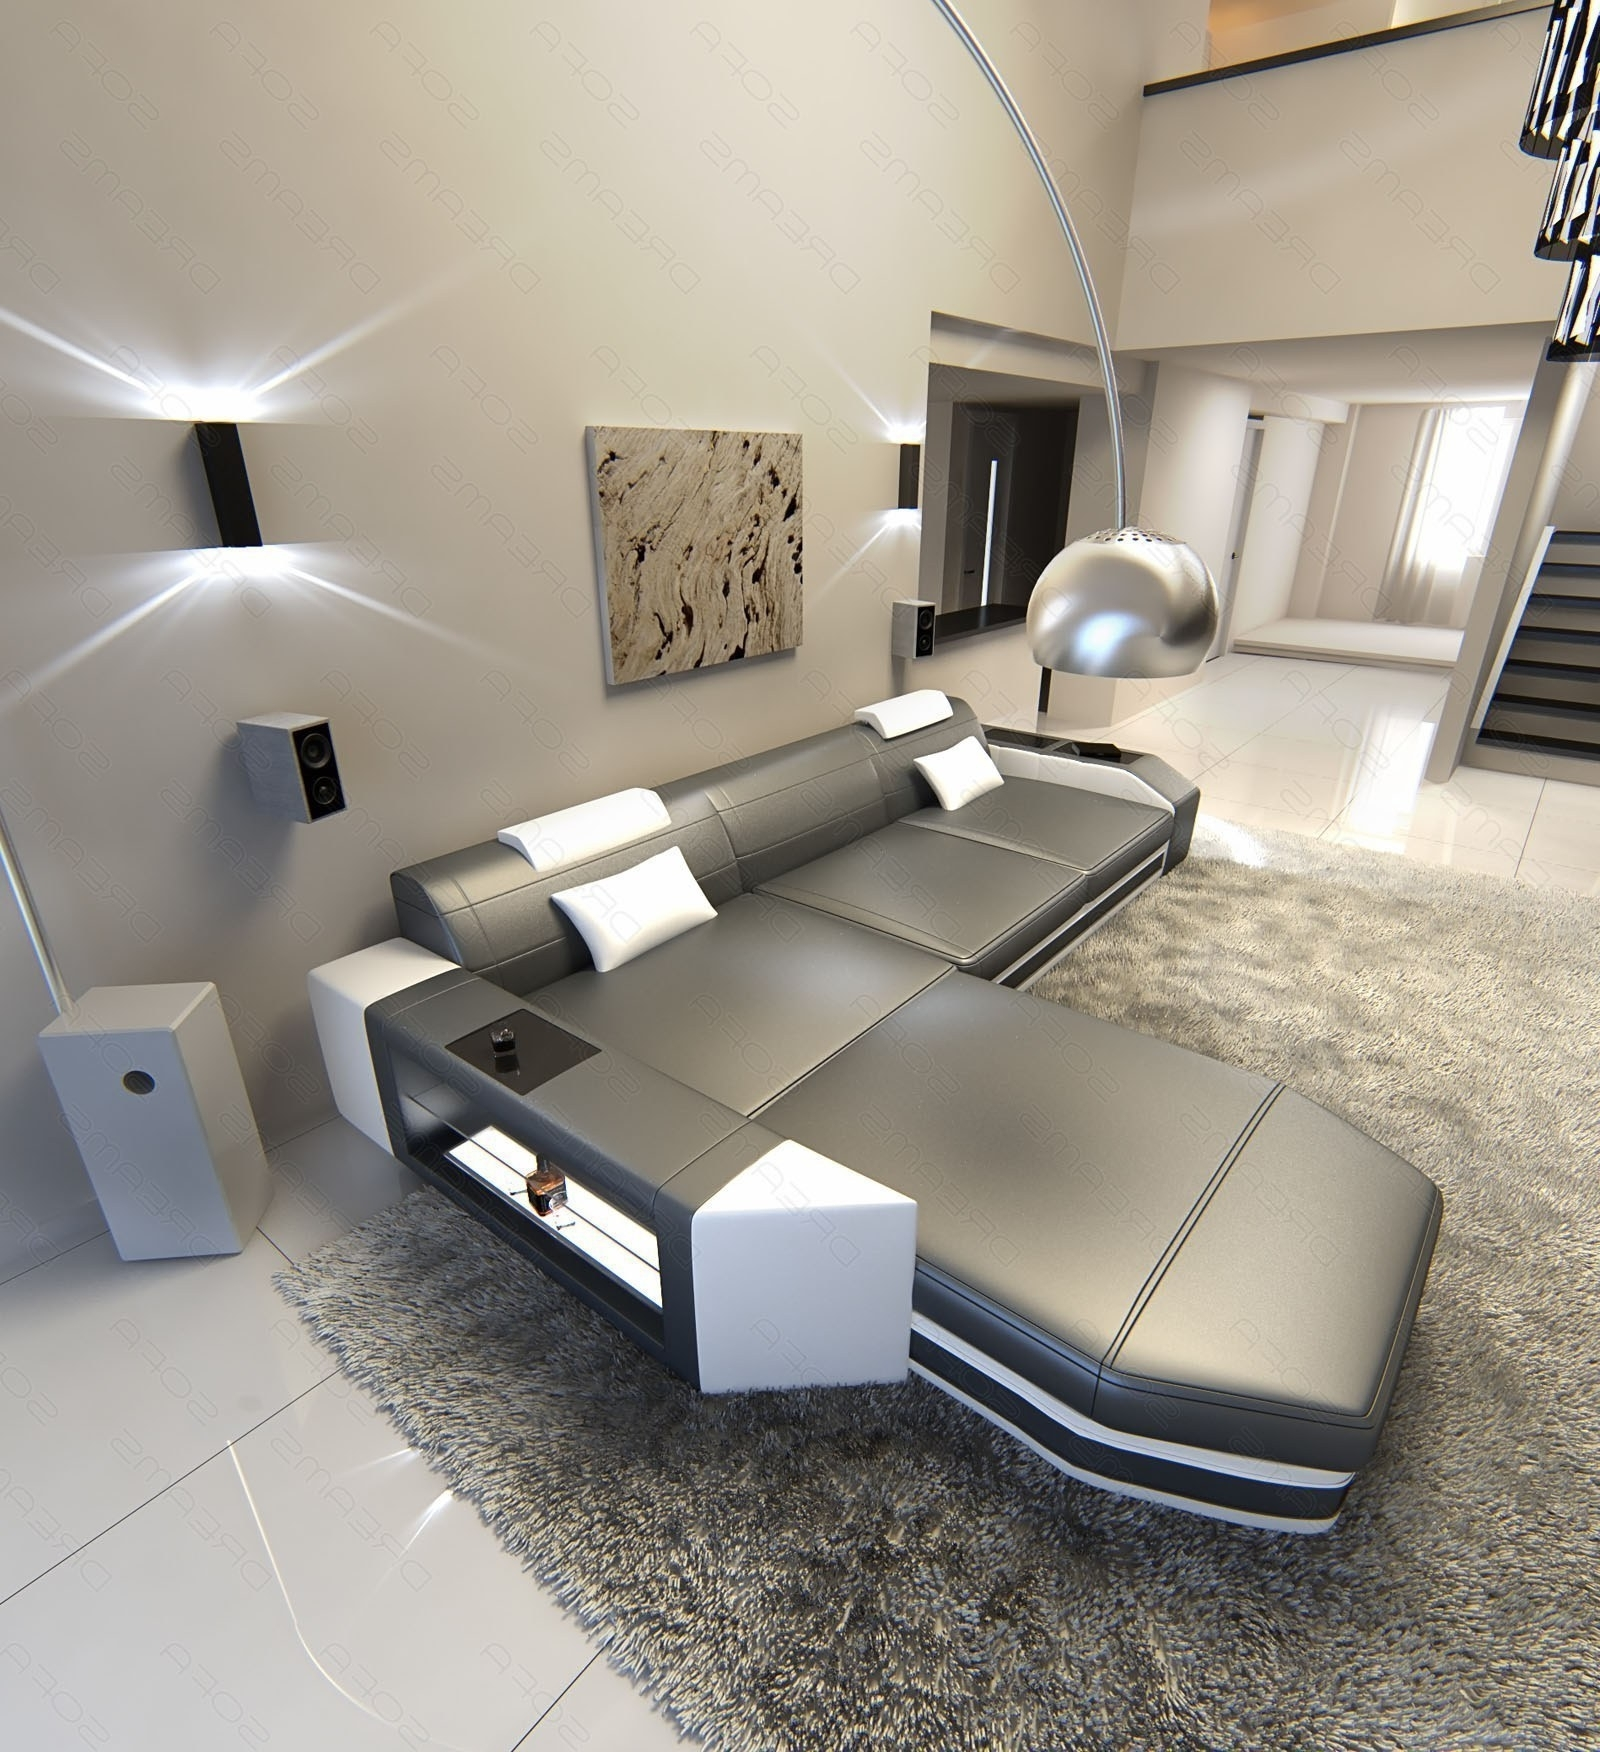 L Shaped Sofas Throughout 2019 Modern L Shaped Sofa Dallas With Led Lights Leather Sofa Grey (View 7 of 20)